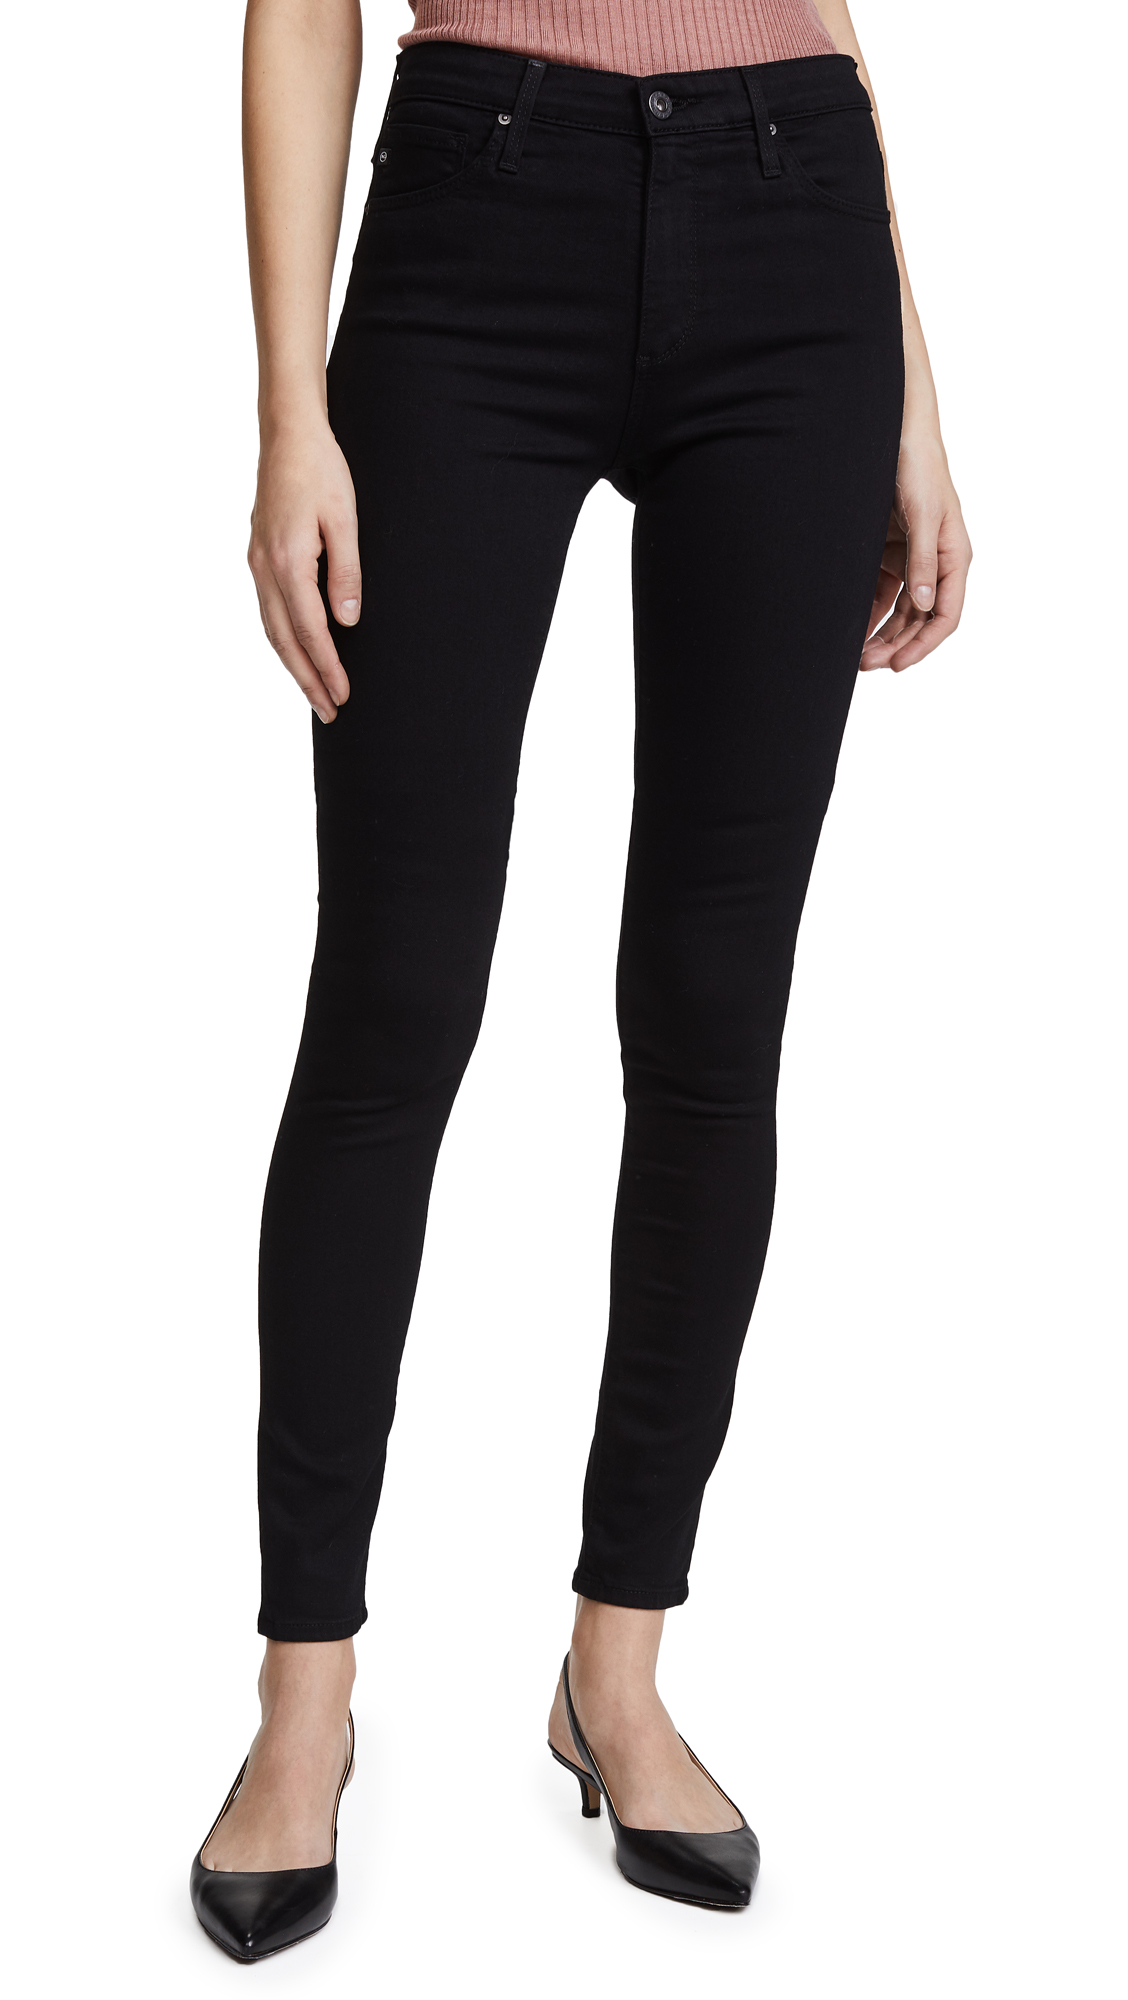 AG Superior Stretch Farrah High Rise Jeans - Super Black